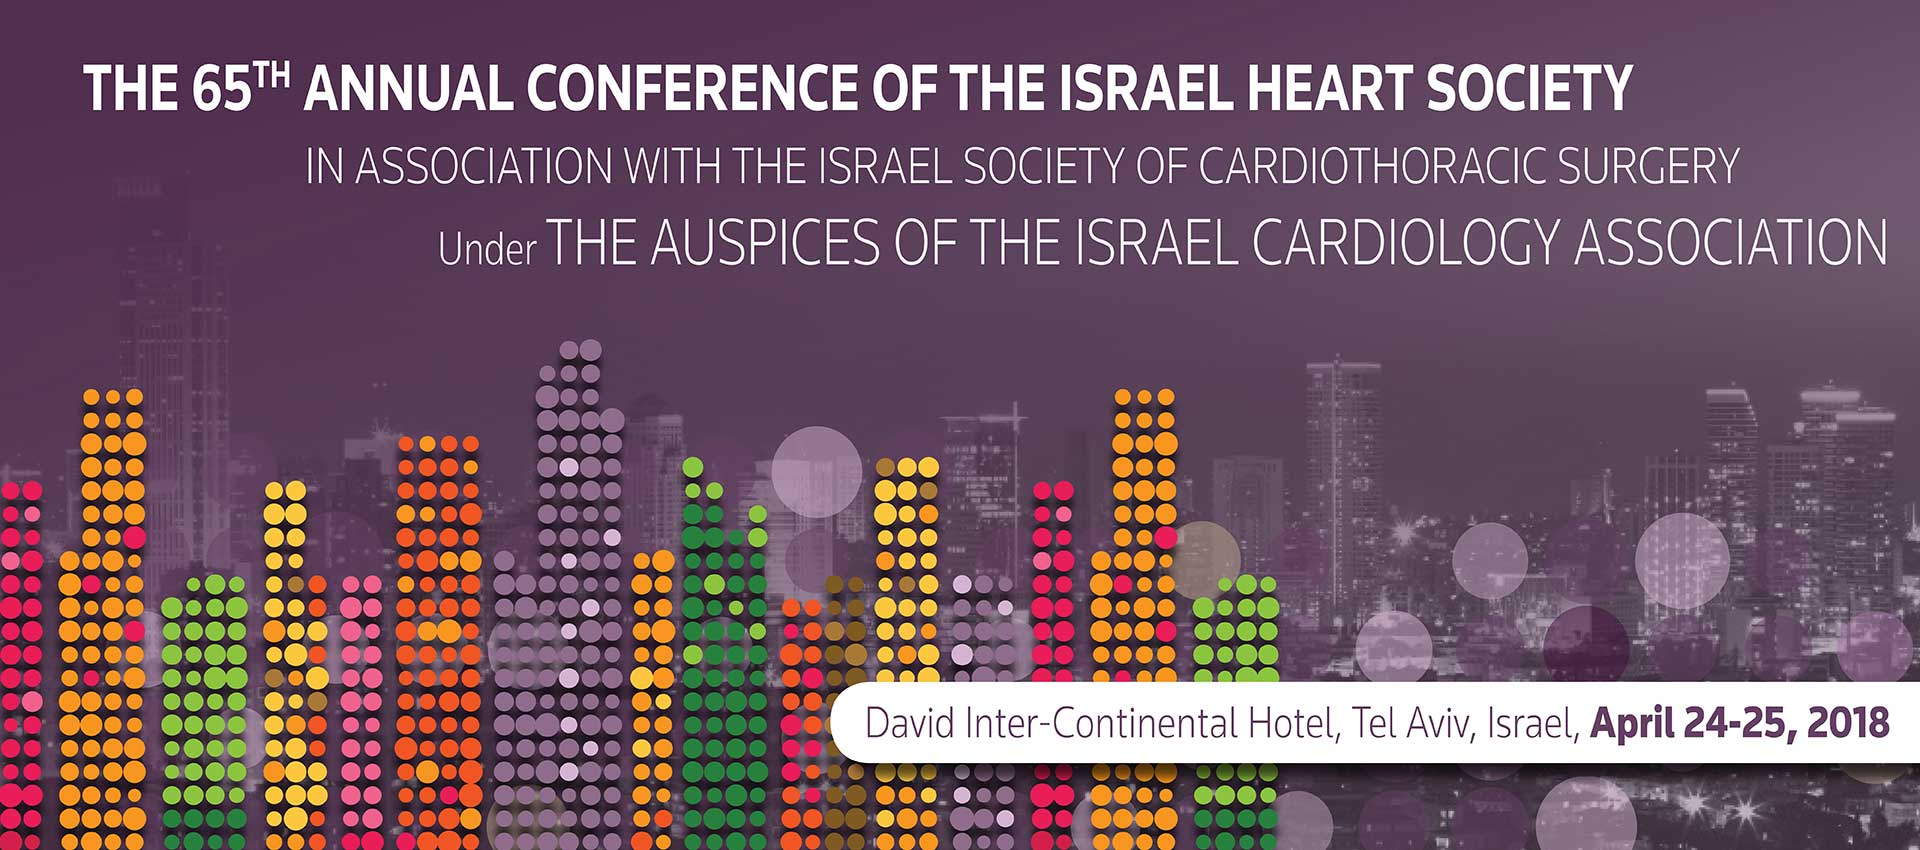 The 65th Annual conference of the Israel Heart Society